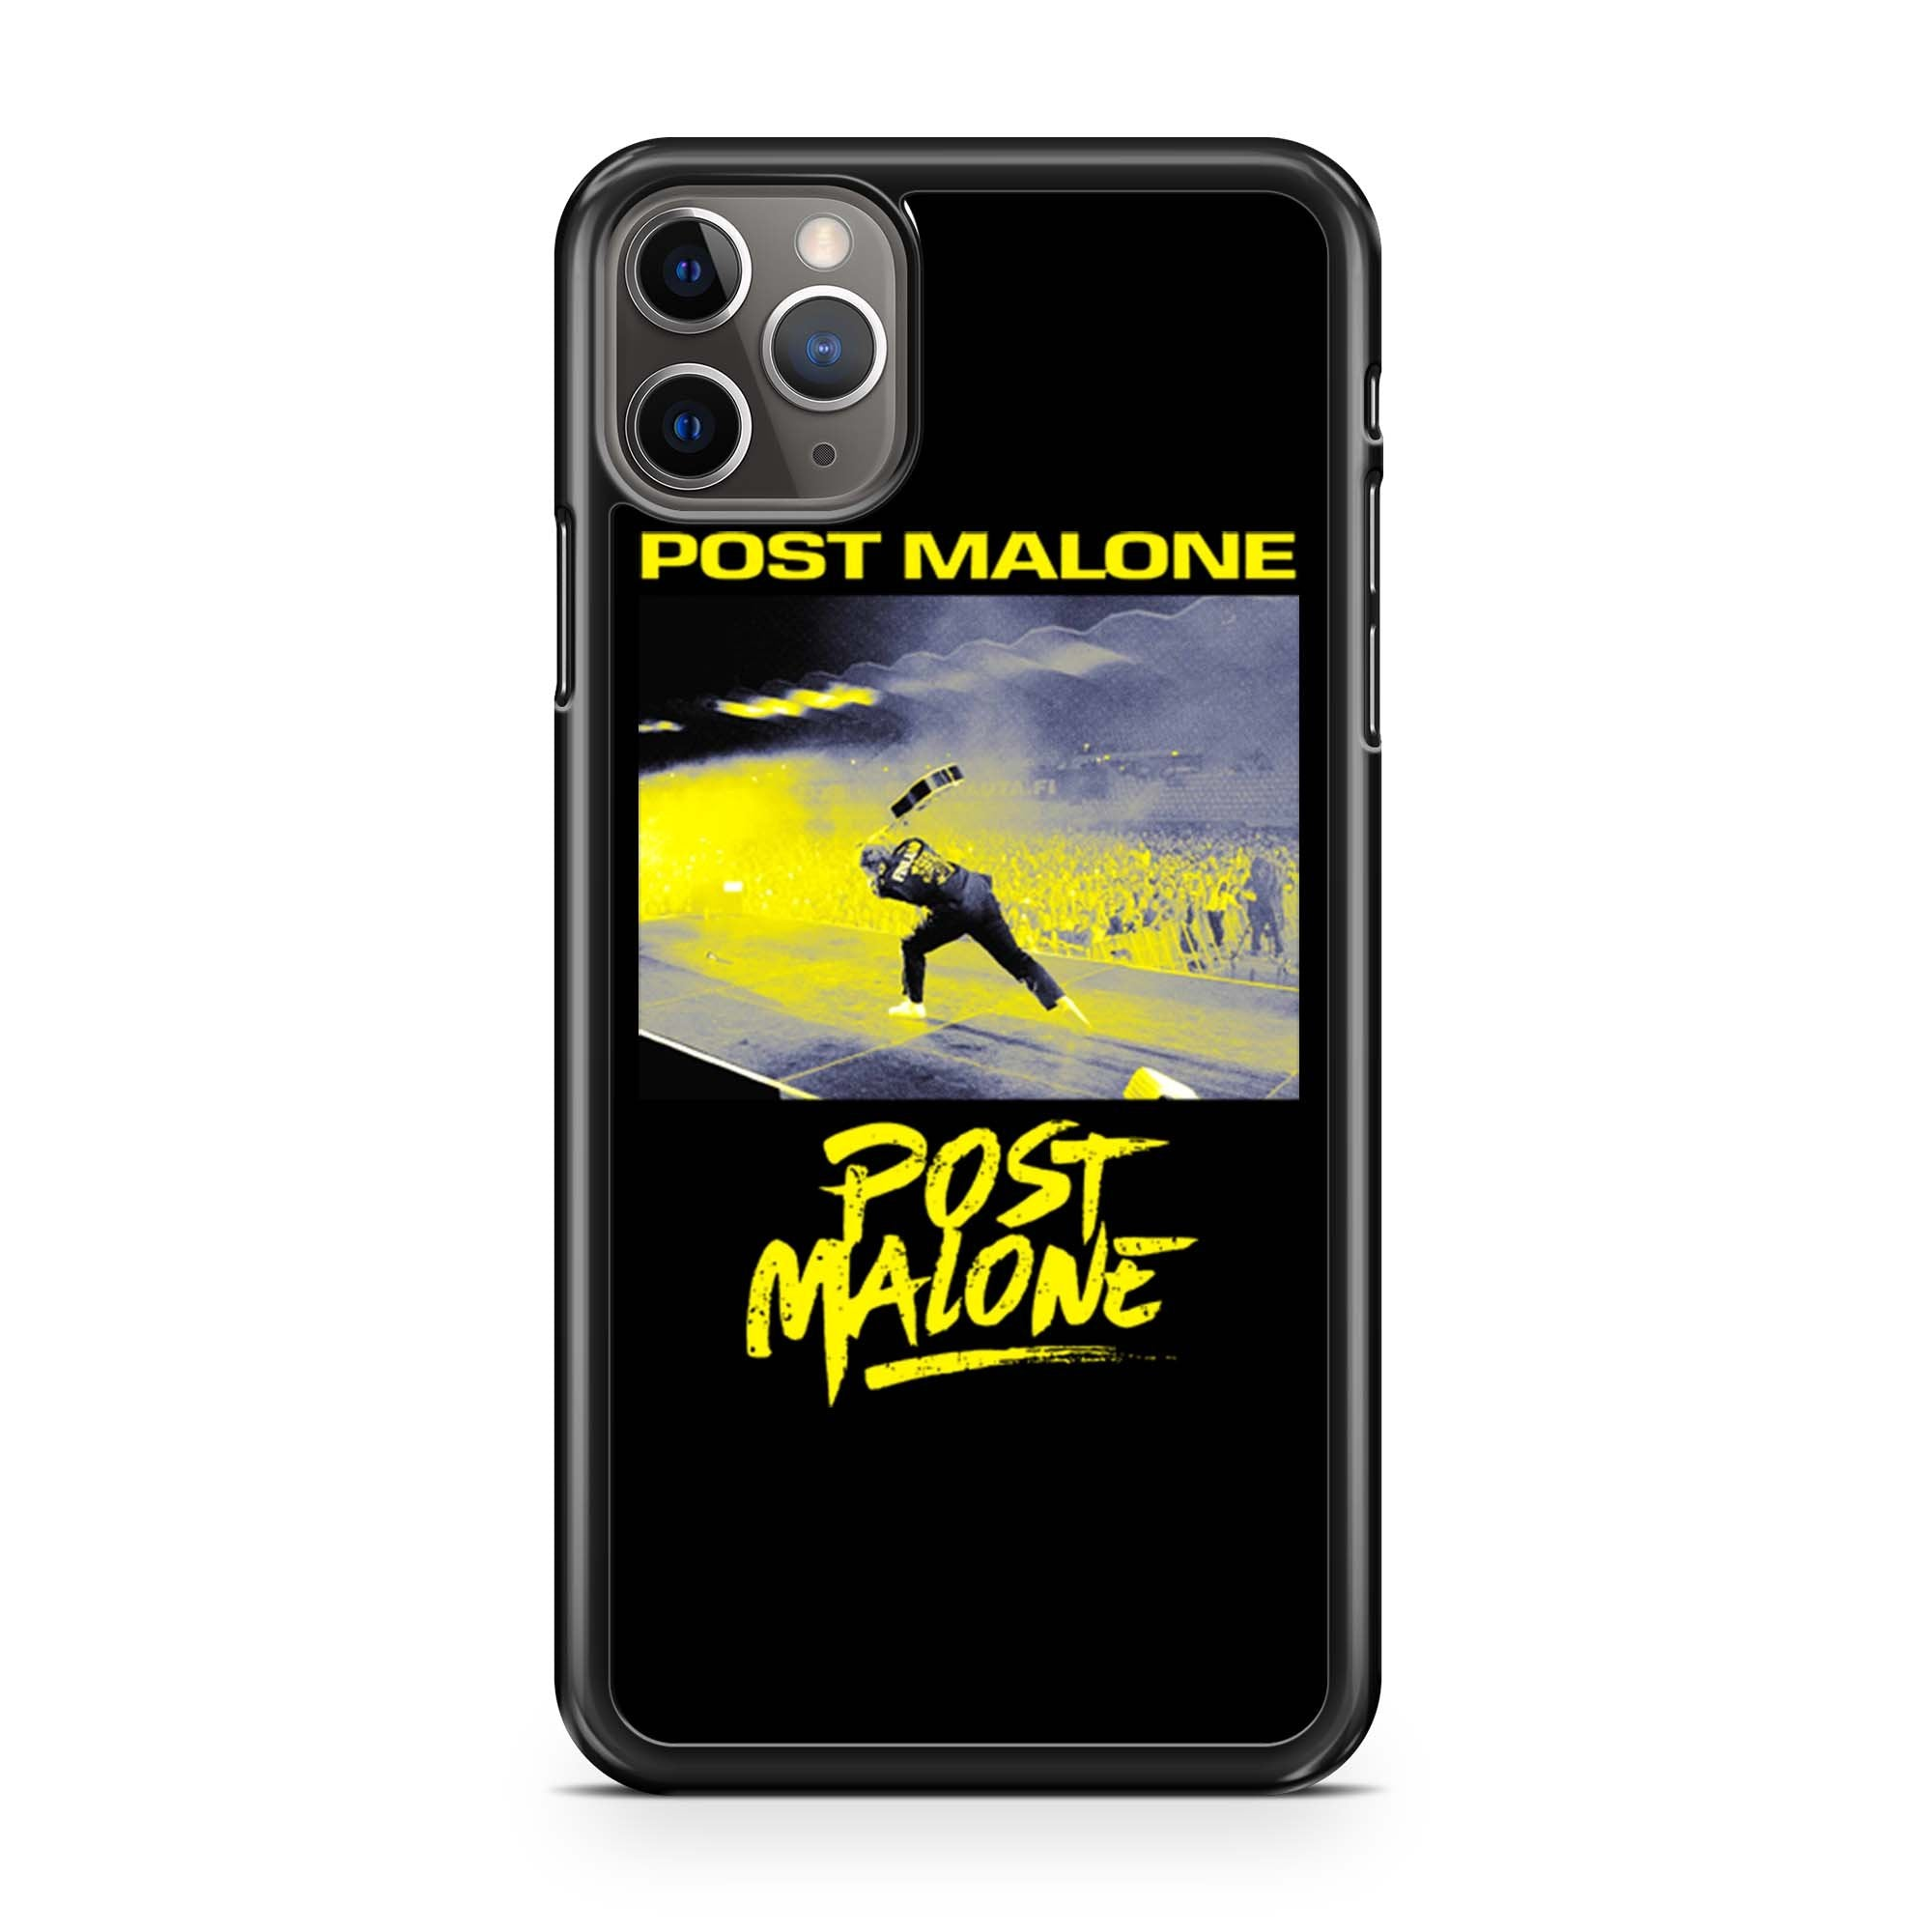 Post Malone Concert iPhone 11 Pro Max Case